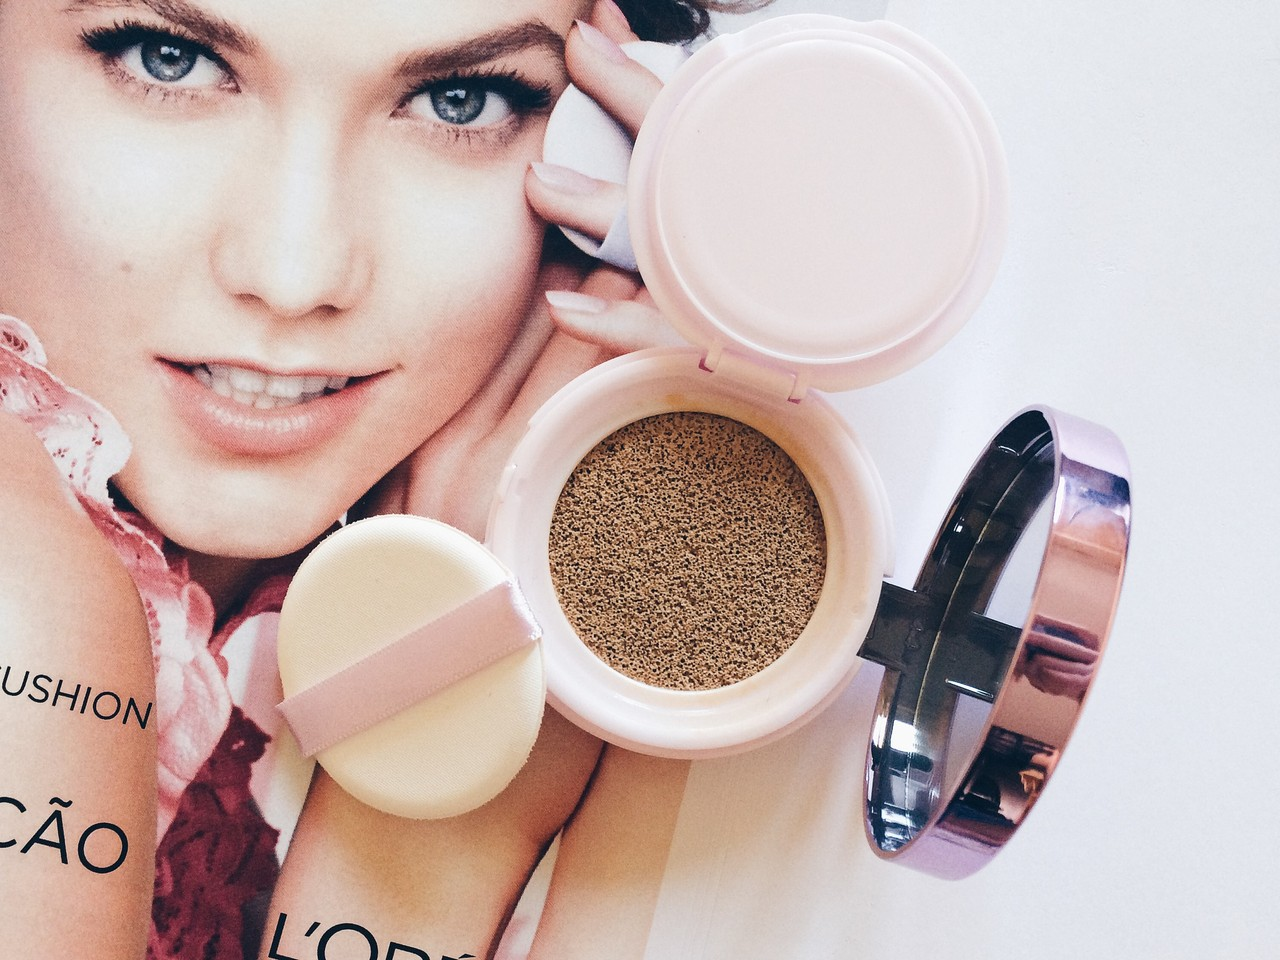 Loreal-Nude-Magique-Cushion-review-antes-e-depois